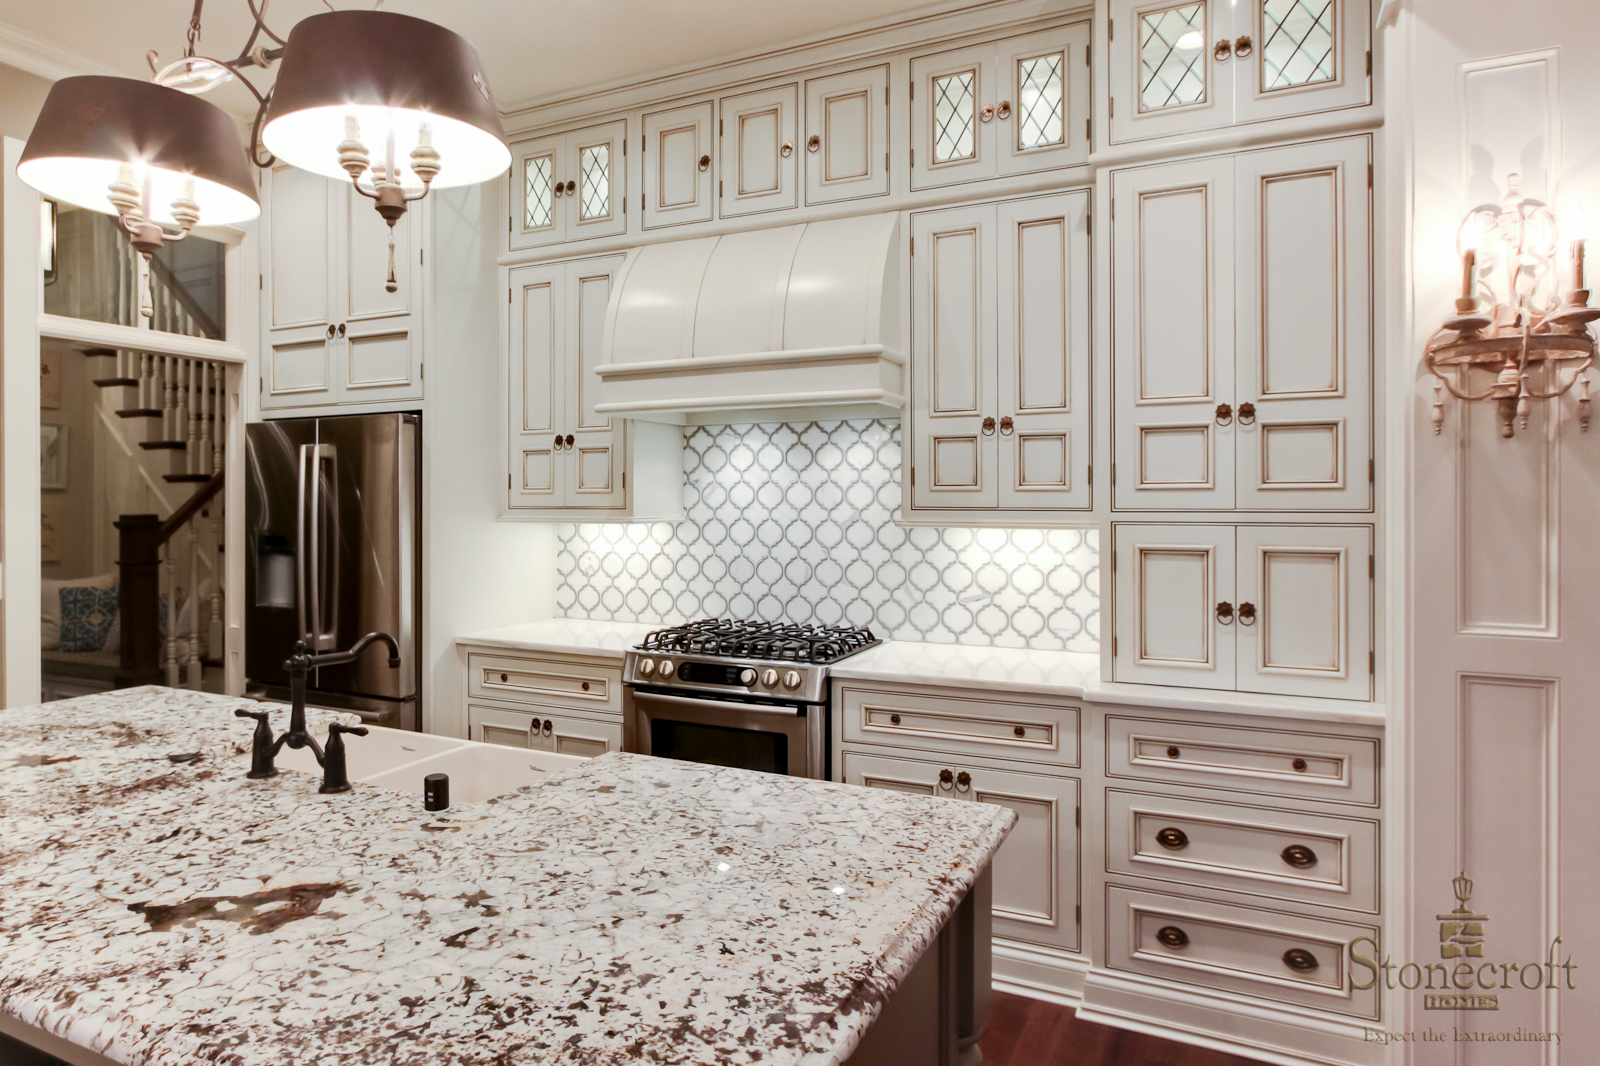 choose kitchen backsplash design ideas home kitchen kitchen built modern kitchen appliances ultra built modern